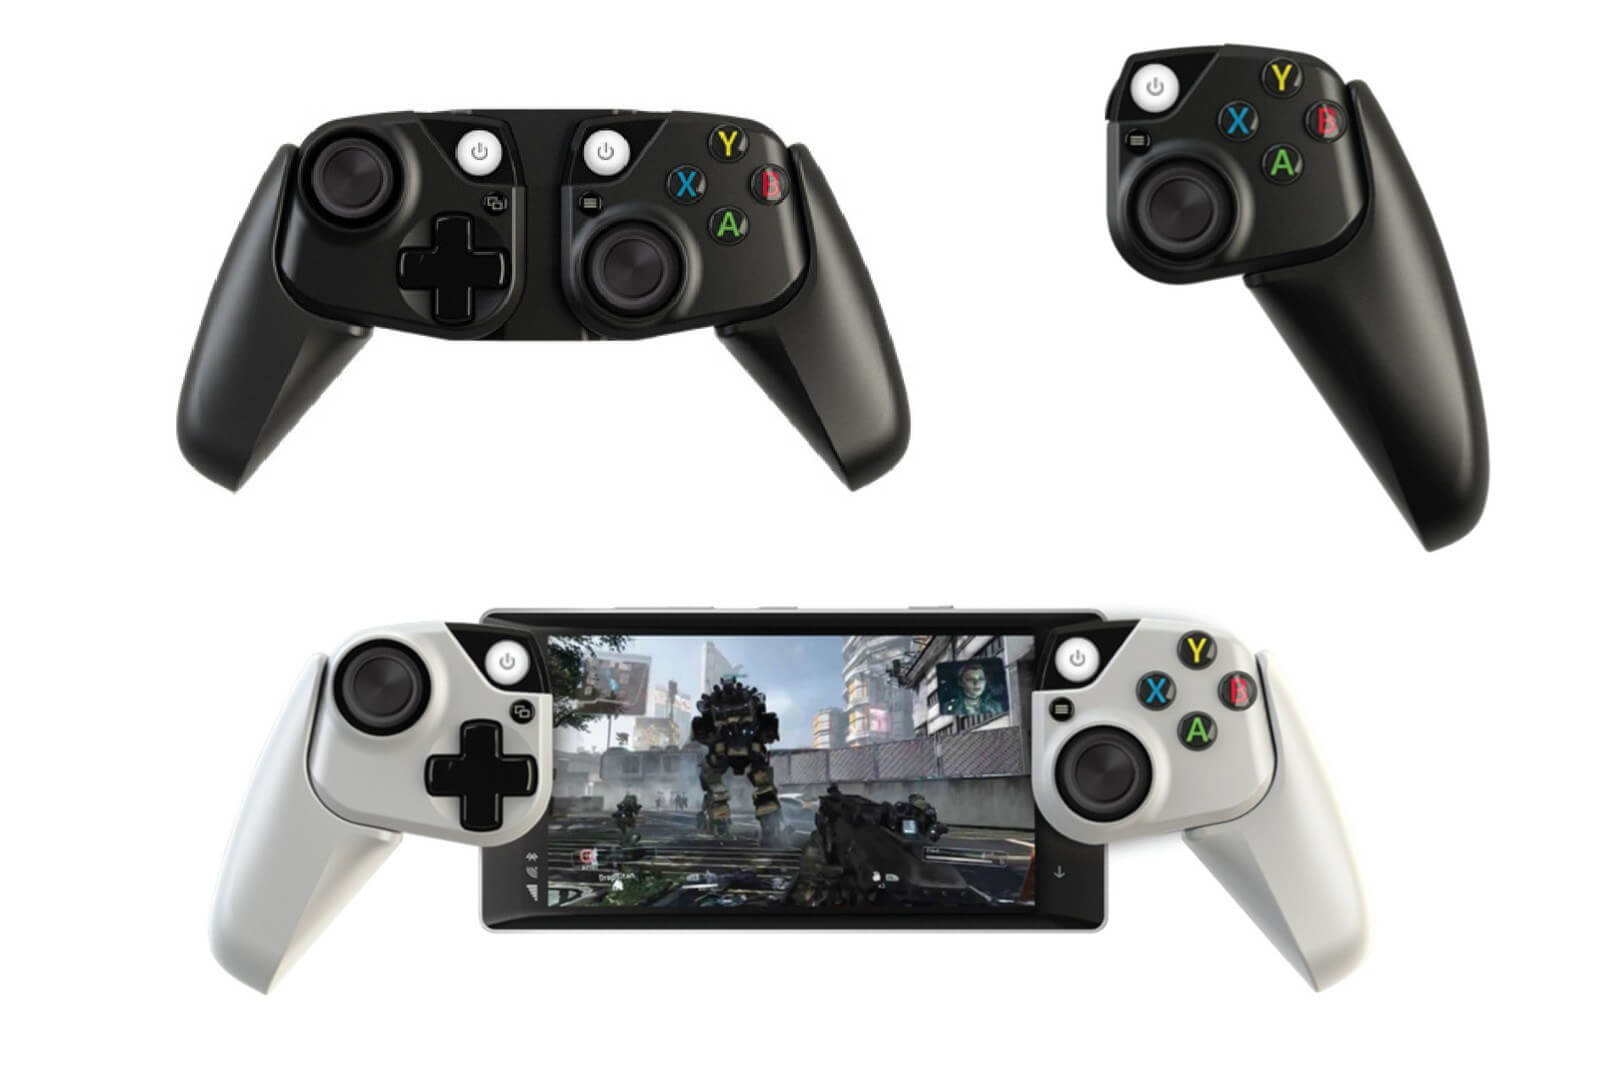 Microsoft is experimenting with controllers for mobile gaming